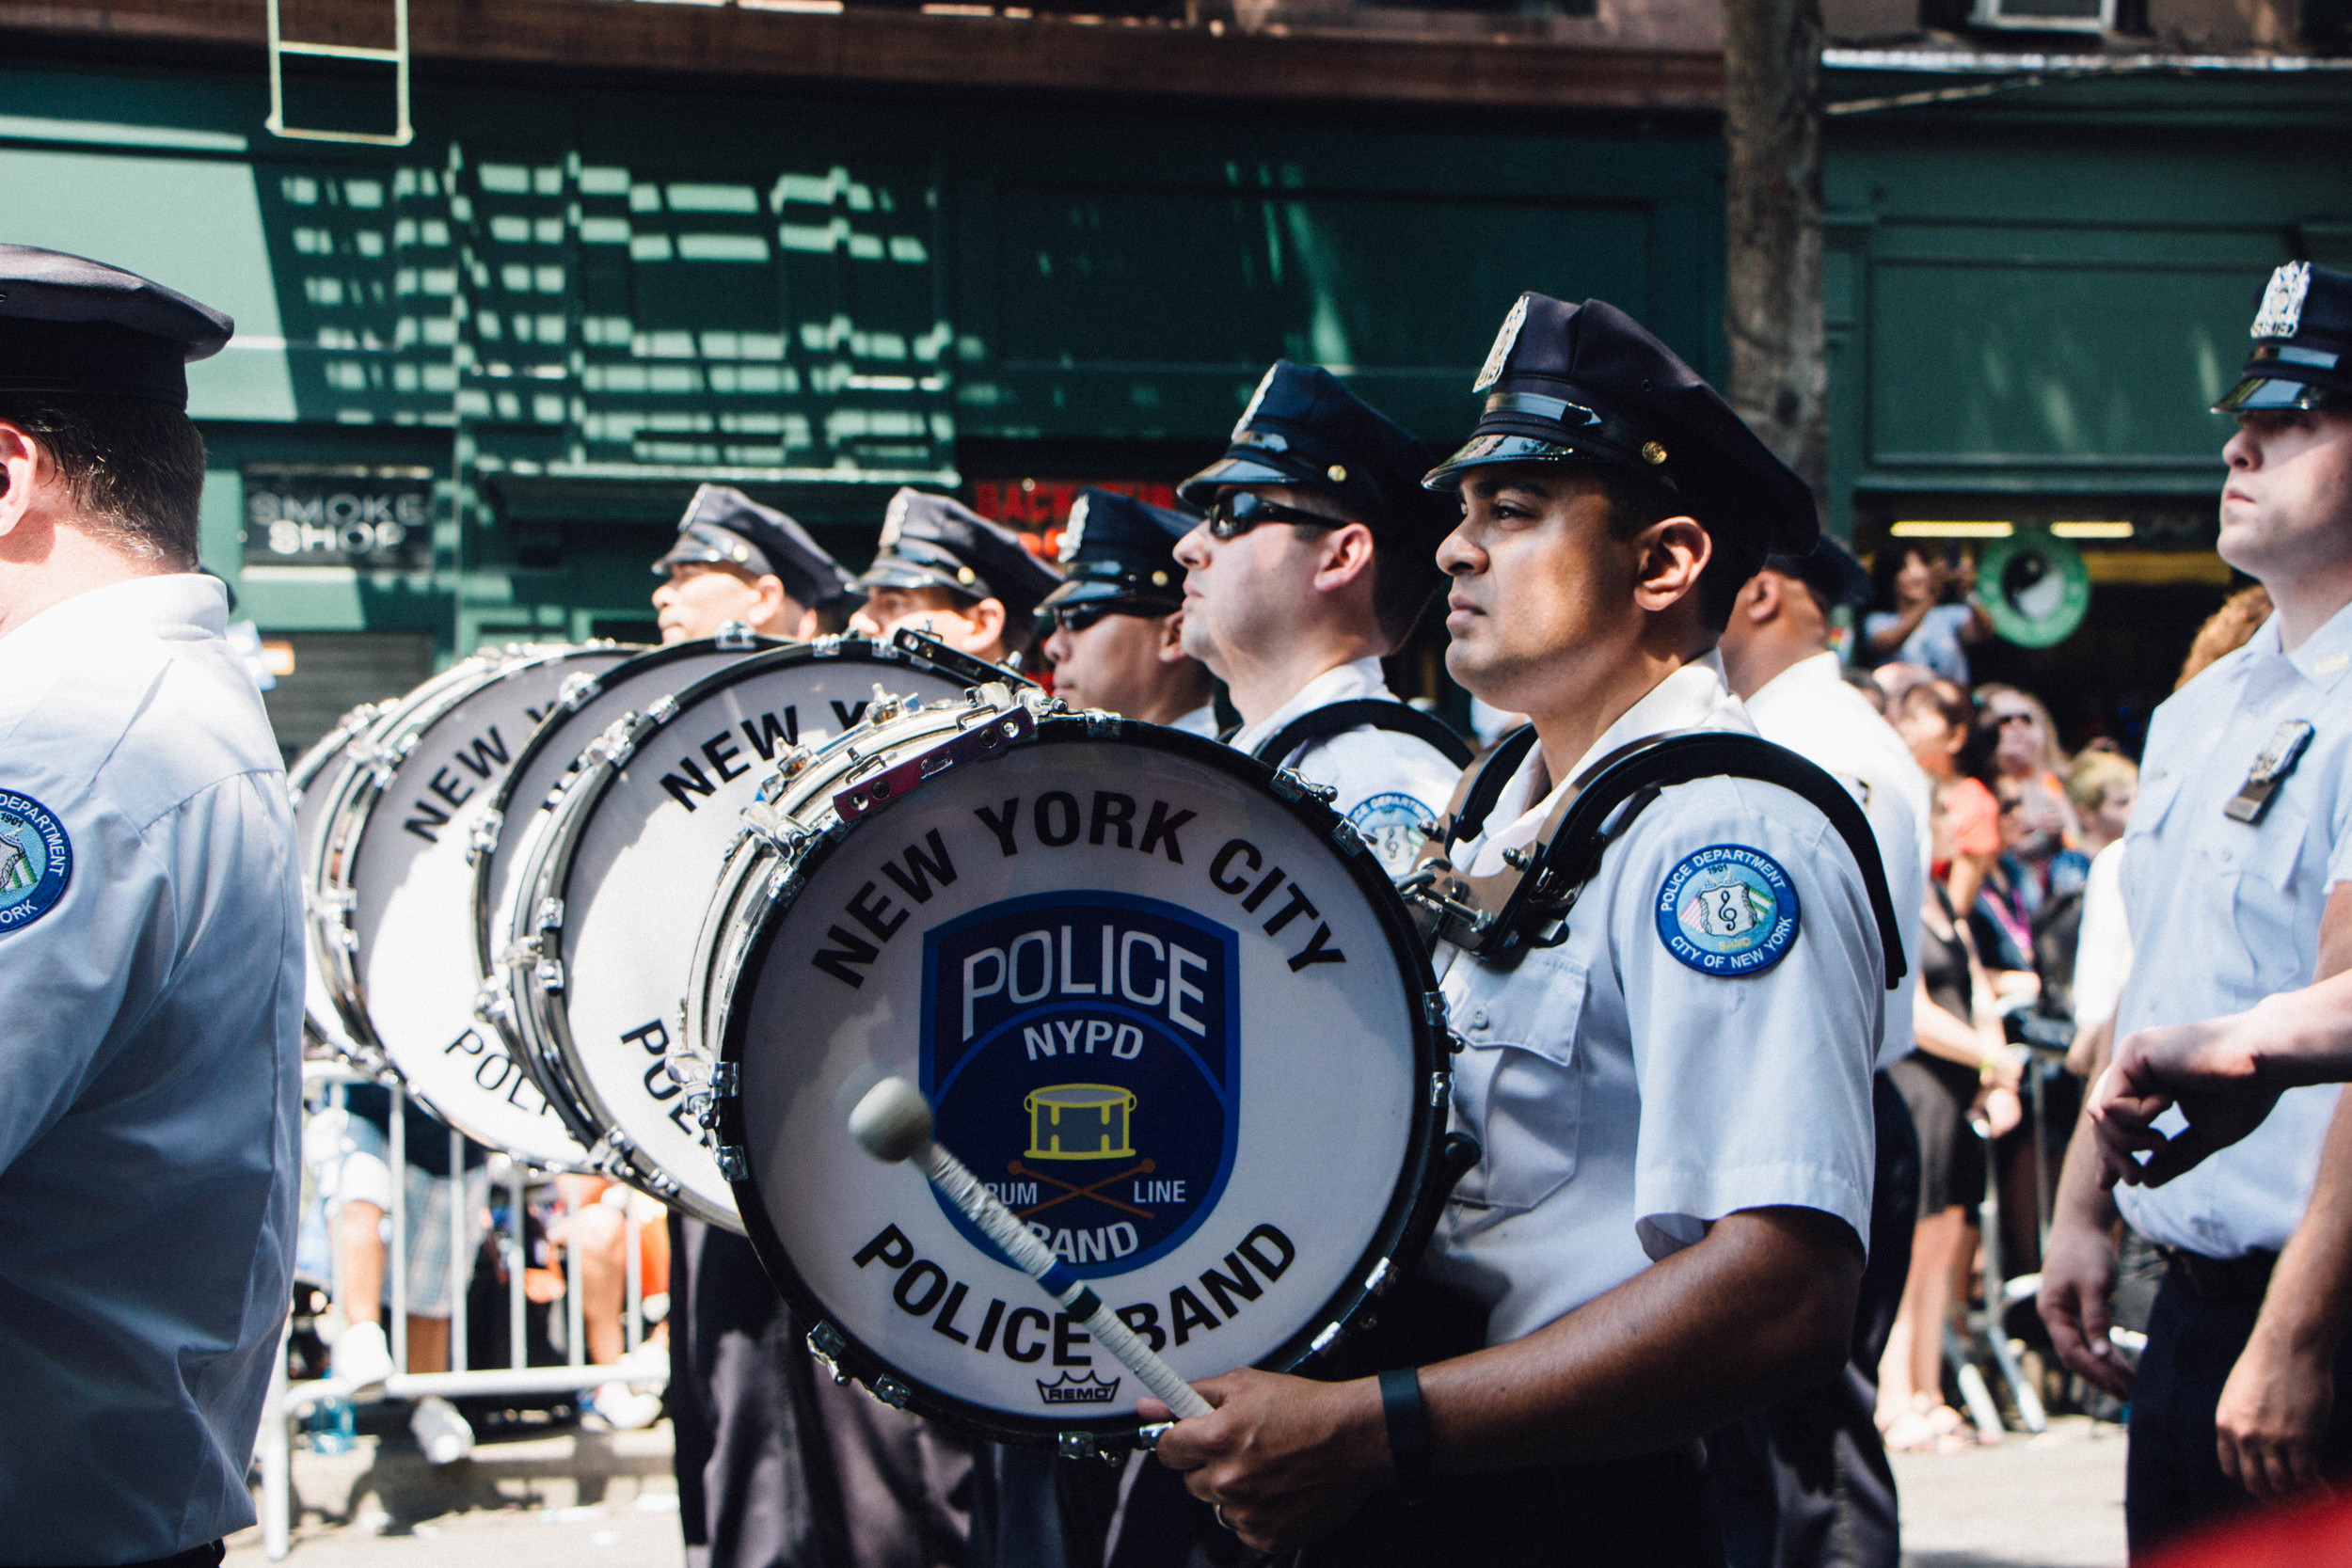 The New York Police Department's Police Band march down the streets.